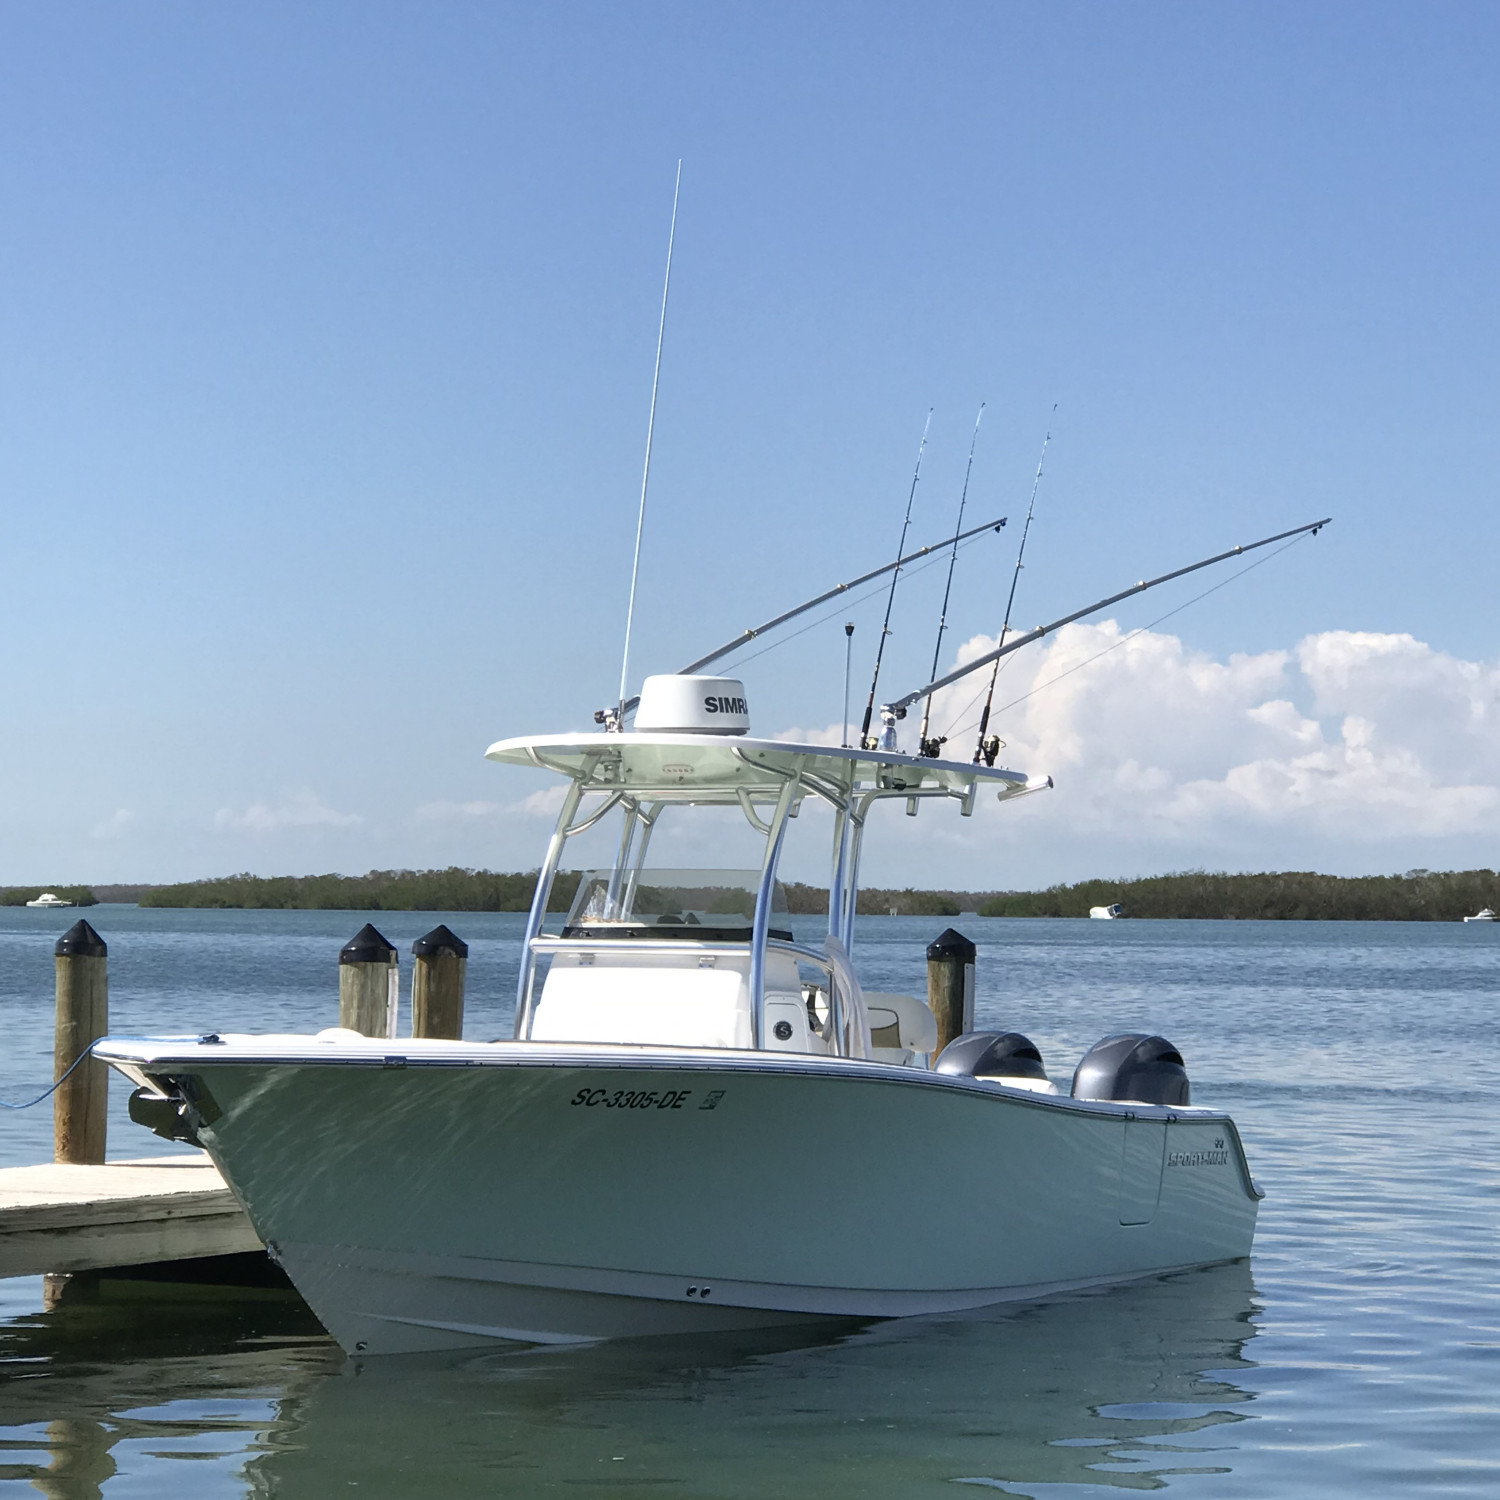 Title: Island Soul relaxing - On board their Sportsman Open 252 Center Console - Location: Islamorada, FL. Participating in the Photo Contest #SportsmanNovember2017